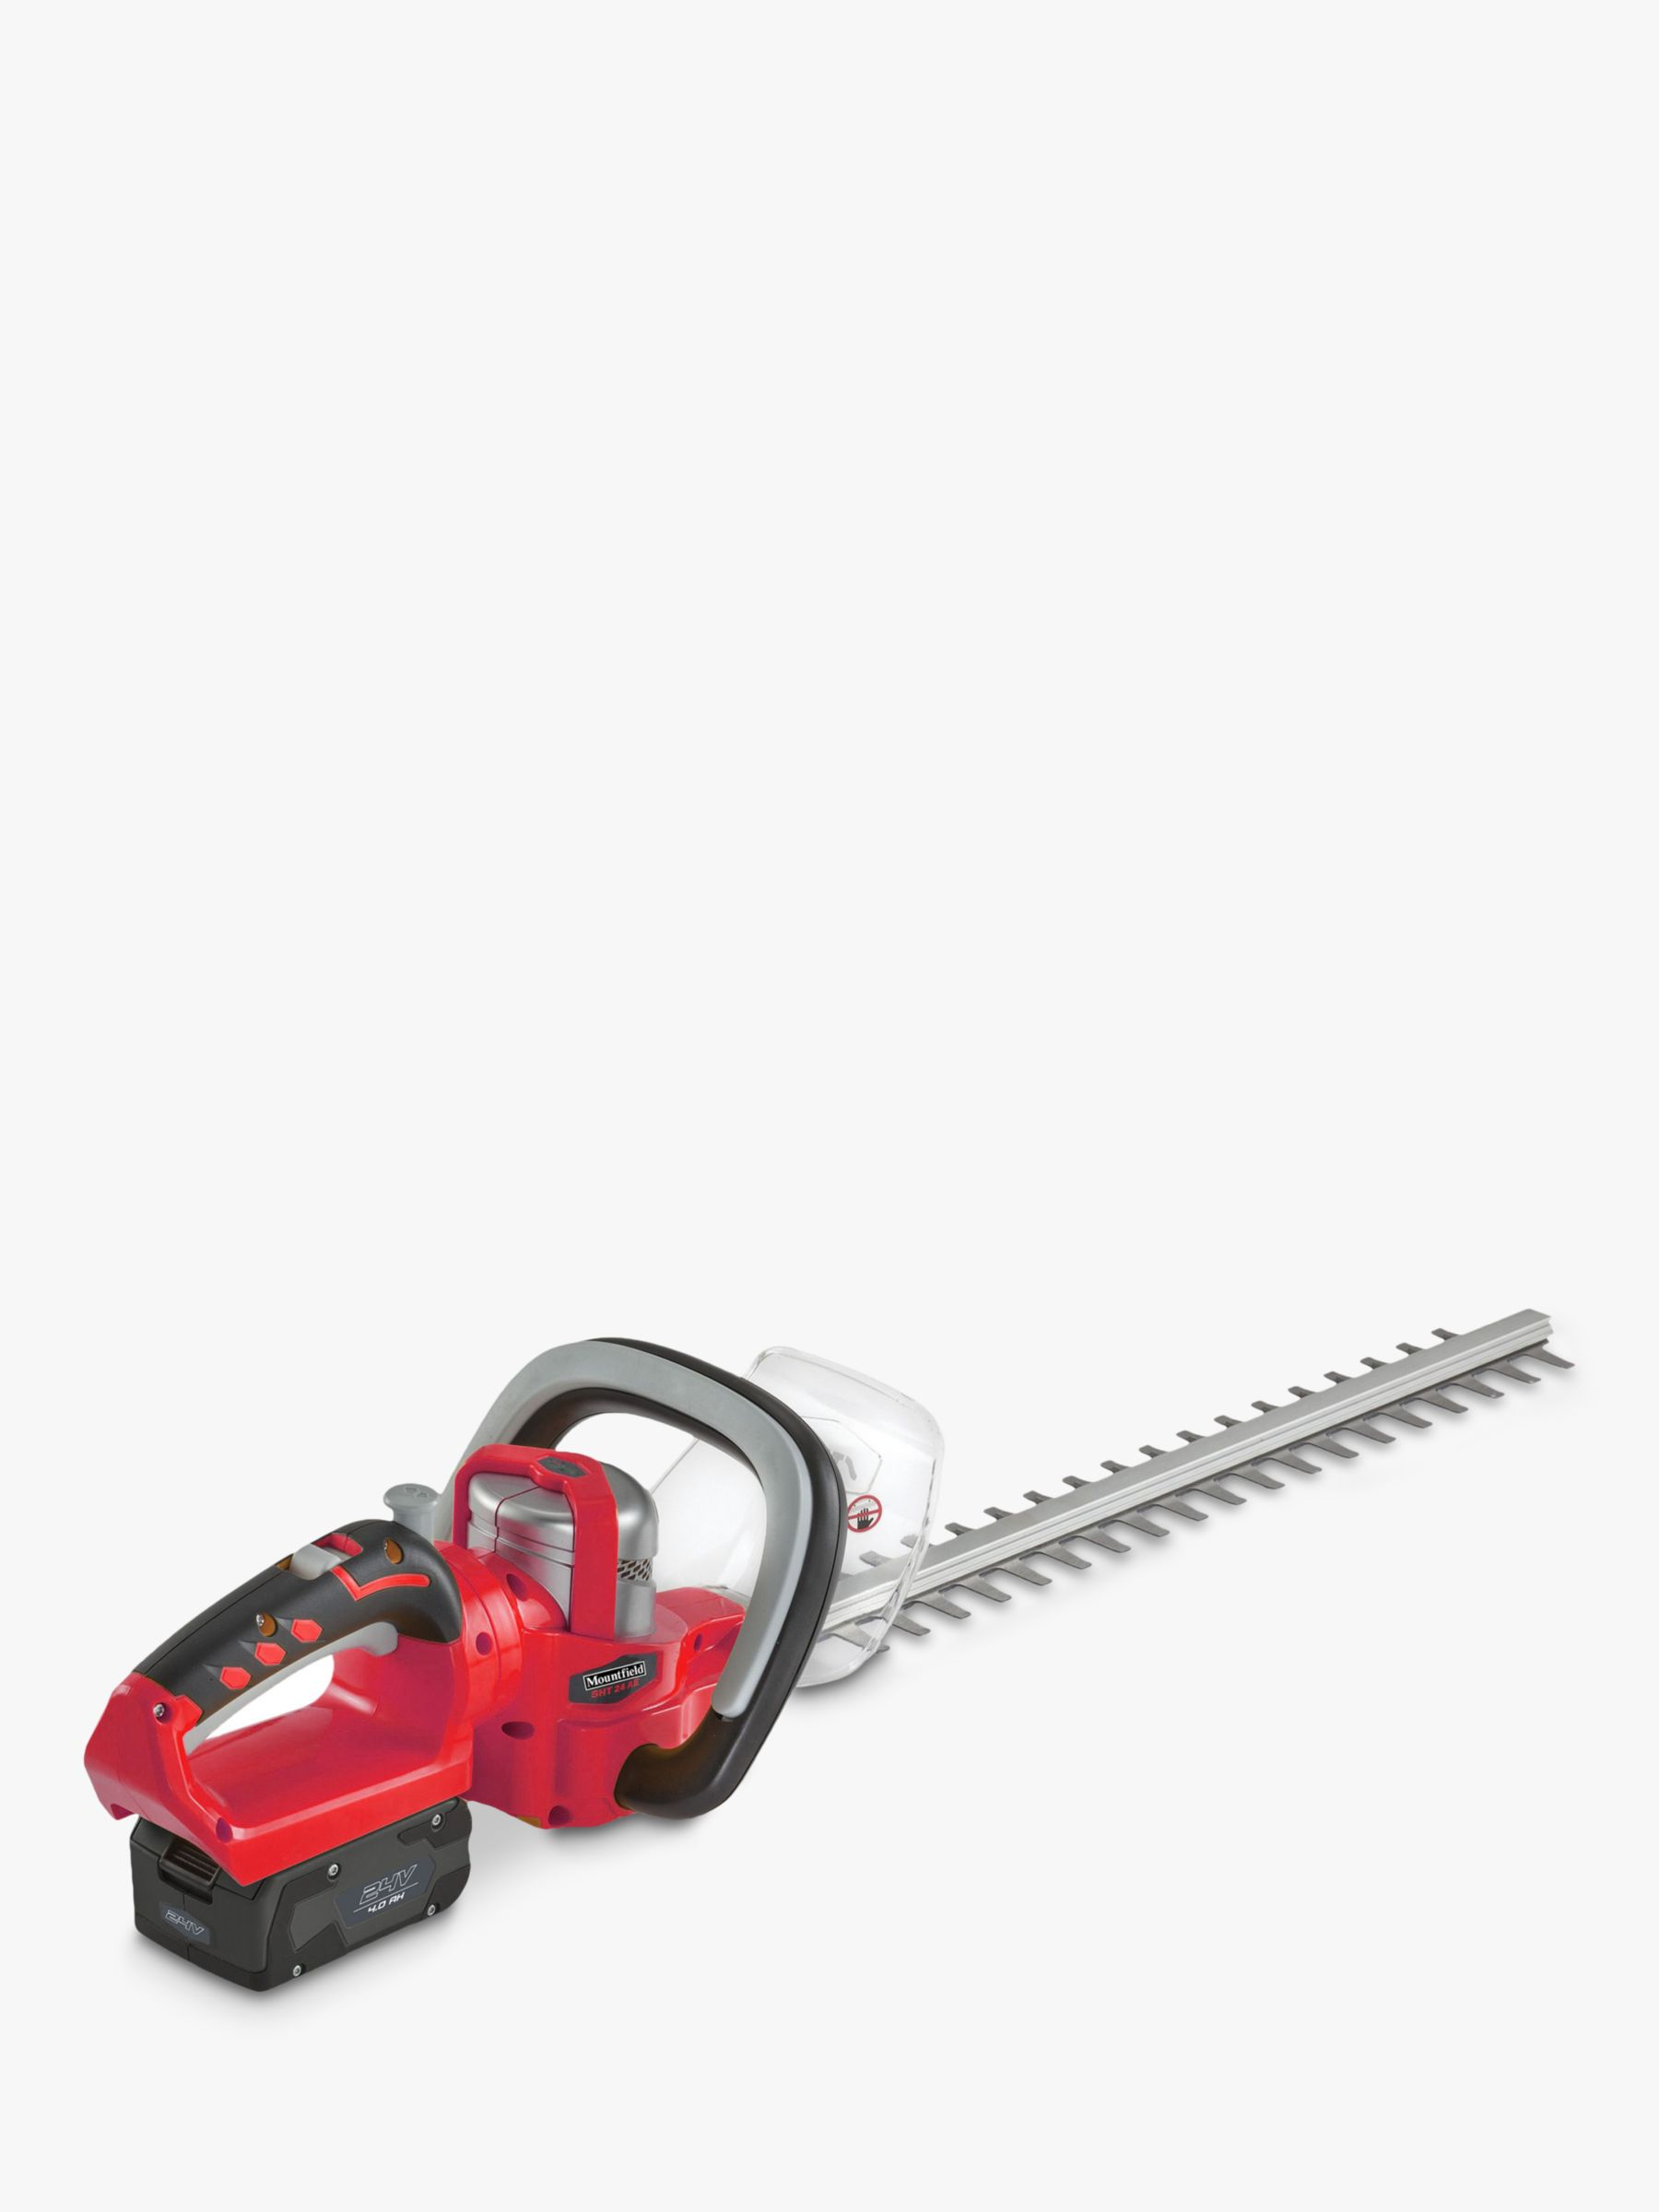 Mountfield Mountfield MH24Li Lithium-Ion Hedge Trimmer